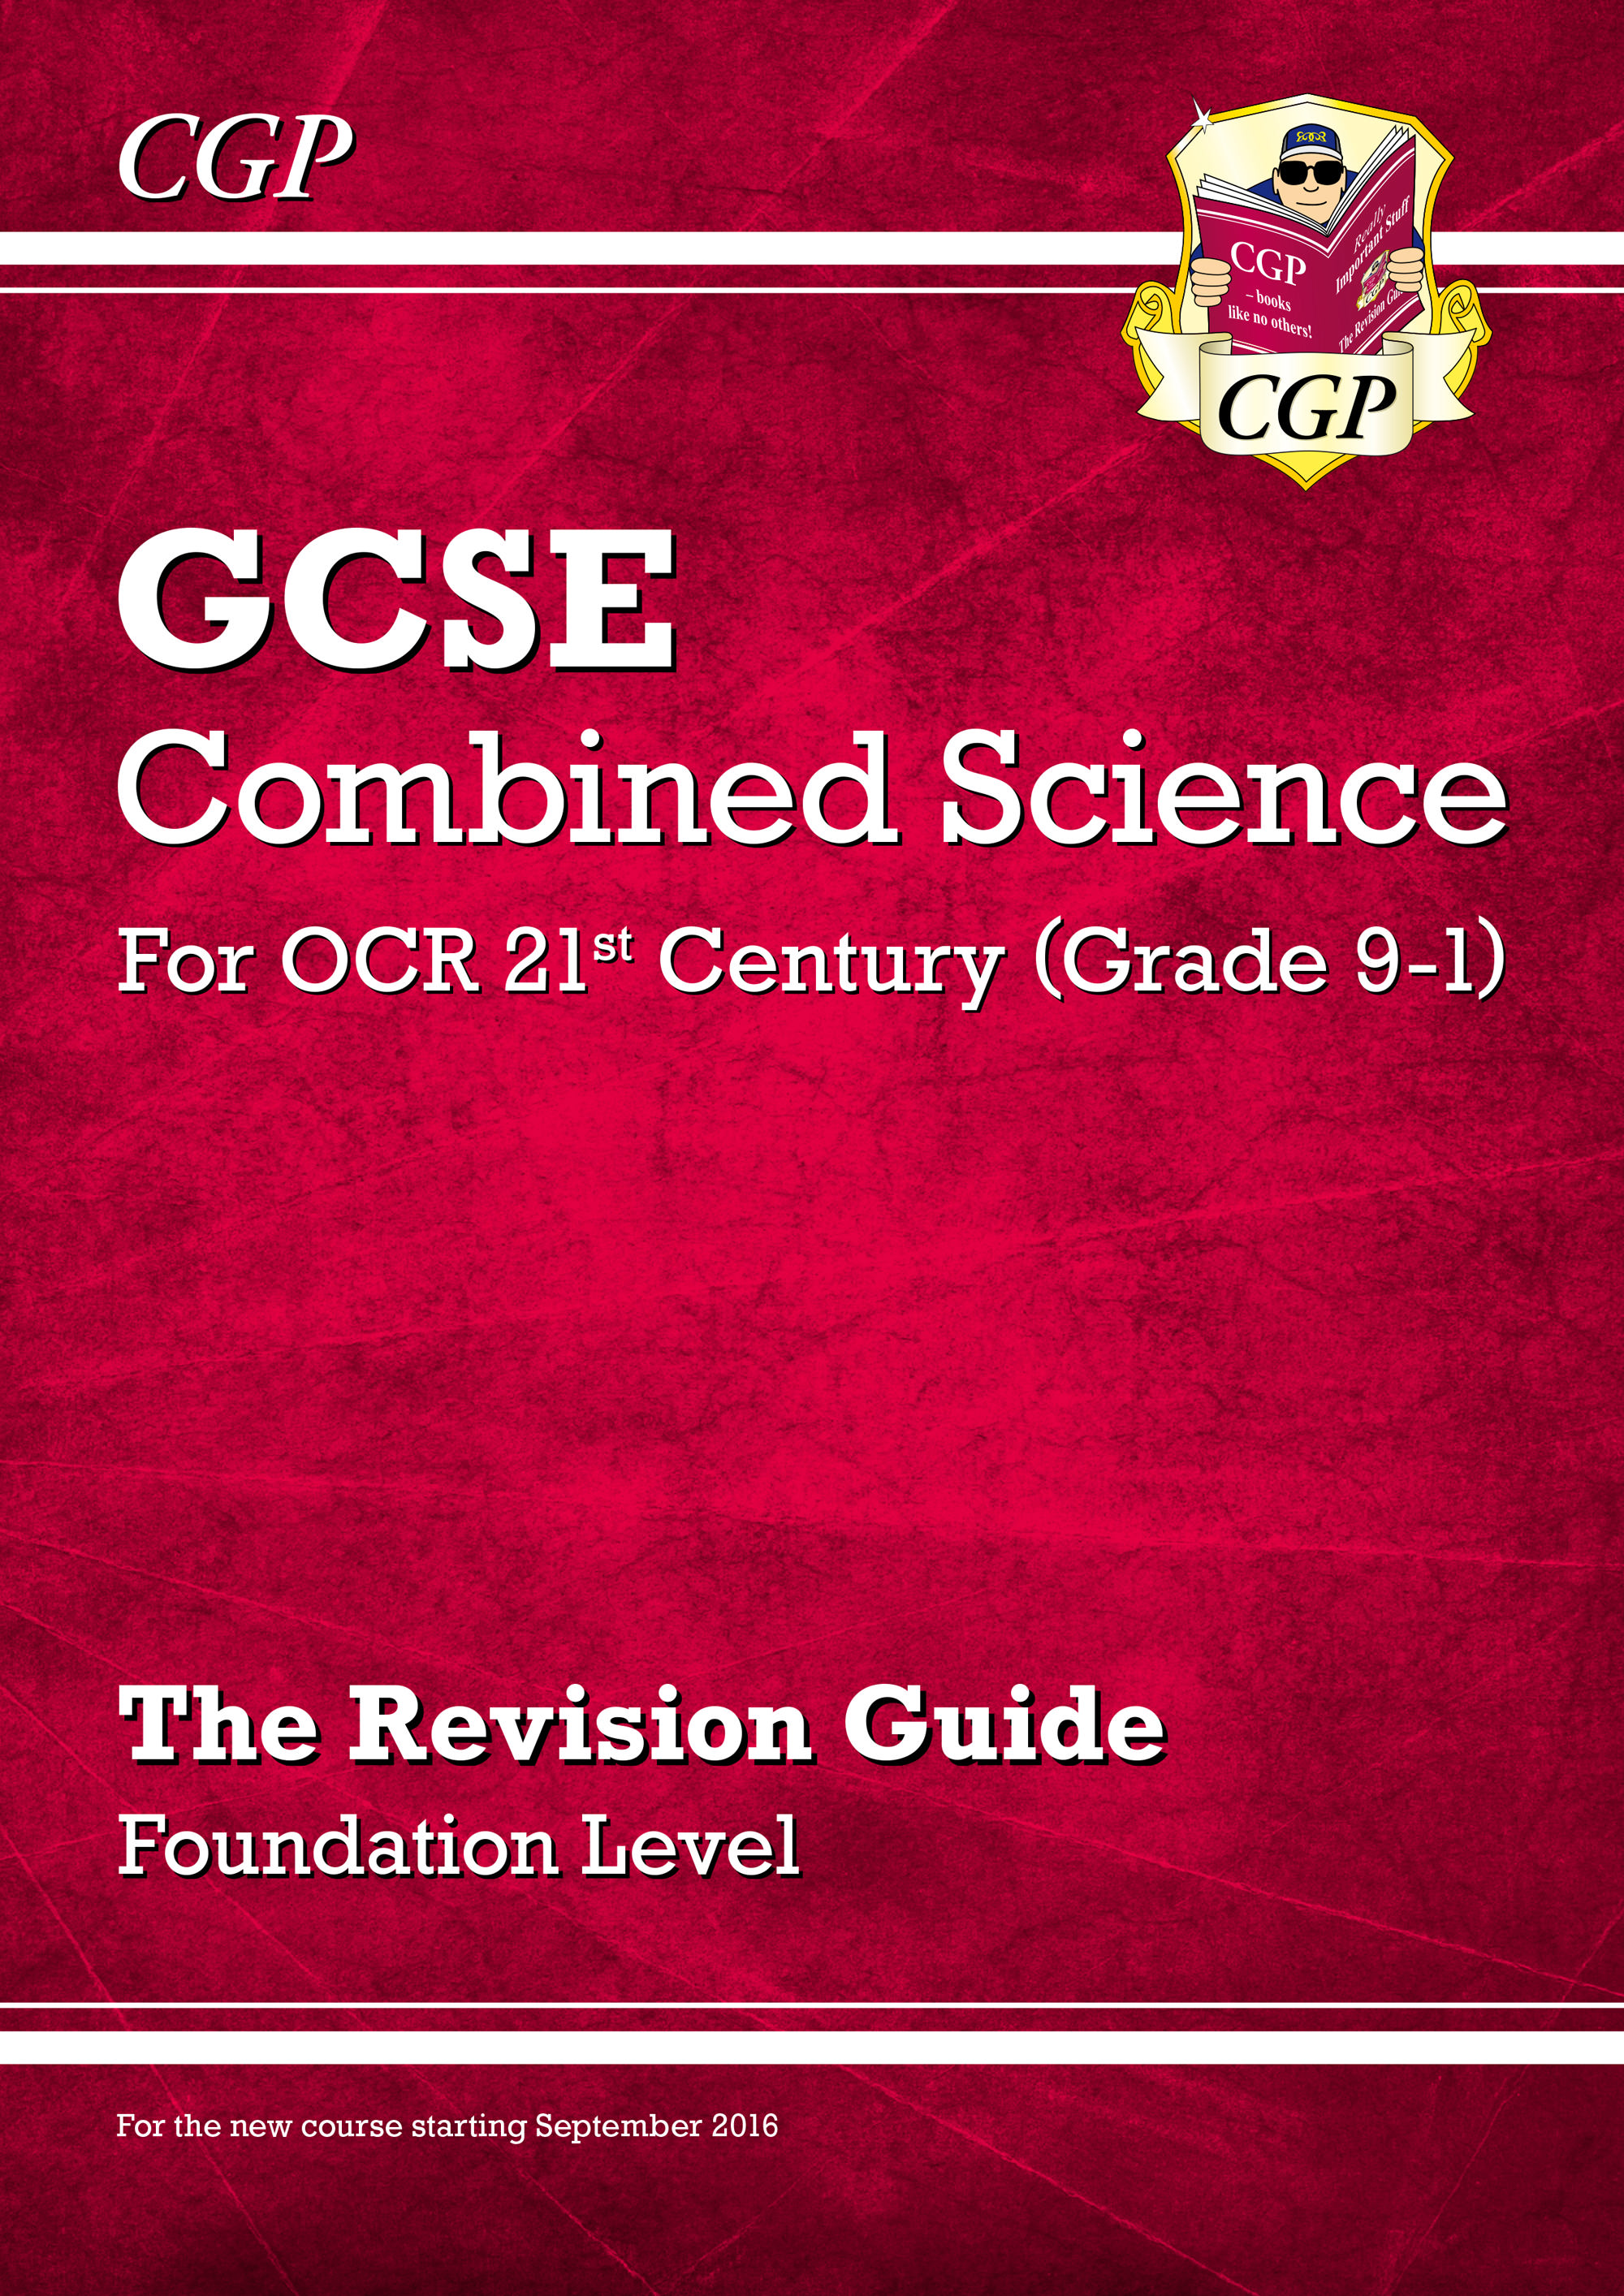 S2FR45DK - New Grade 9-1 GCSE Combined Science: OCR 21st Century Revision Guide - Foundation